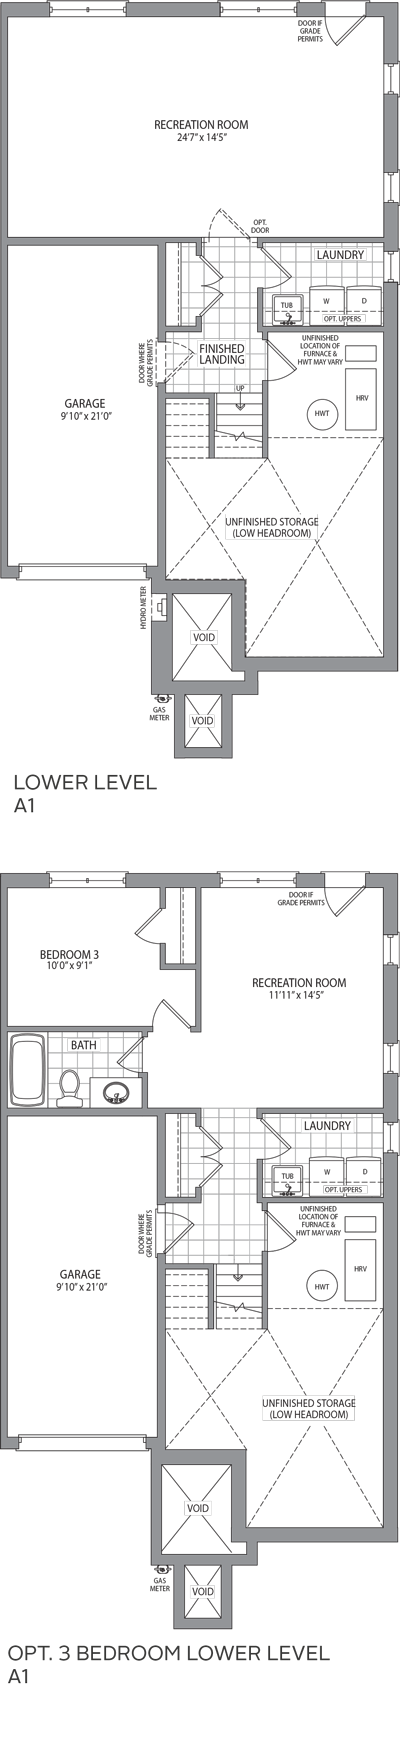 TH4 LOWER LEVEL